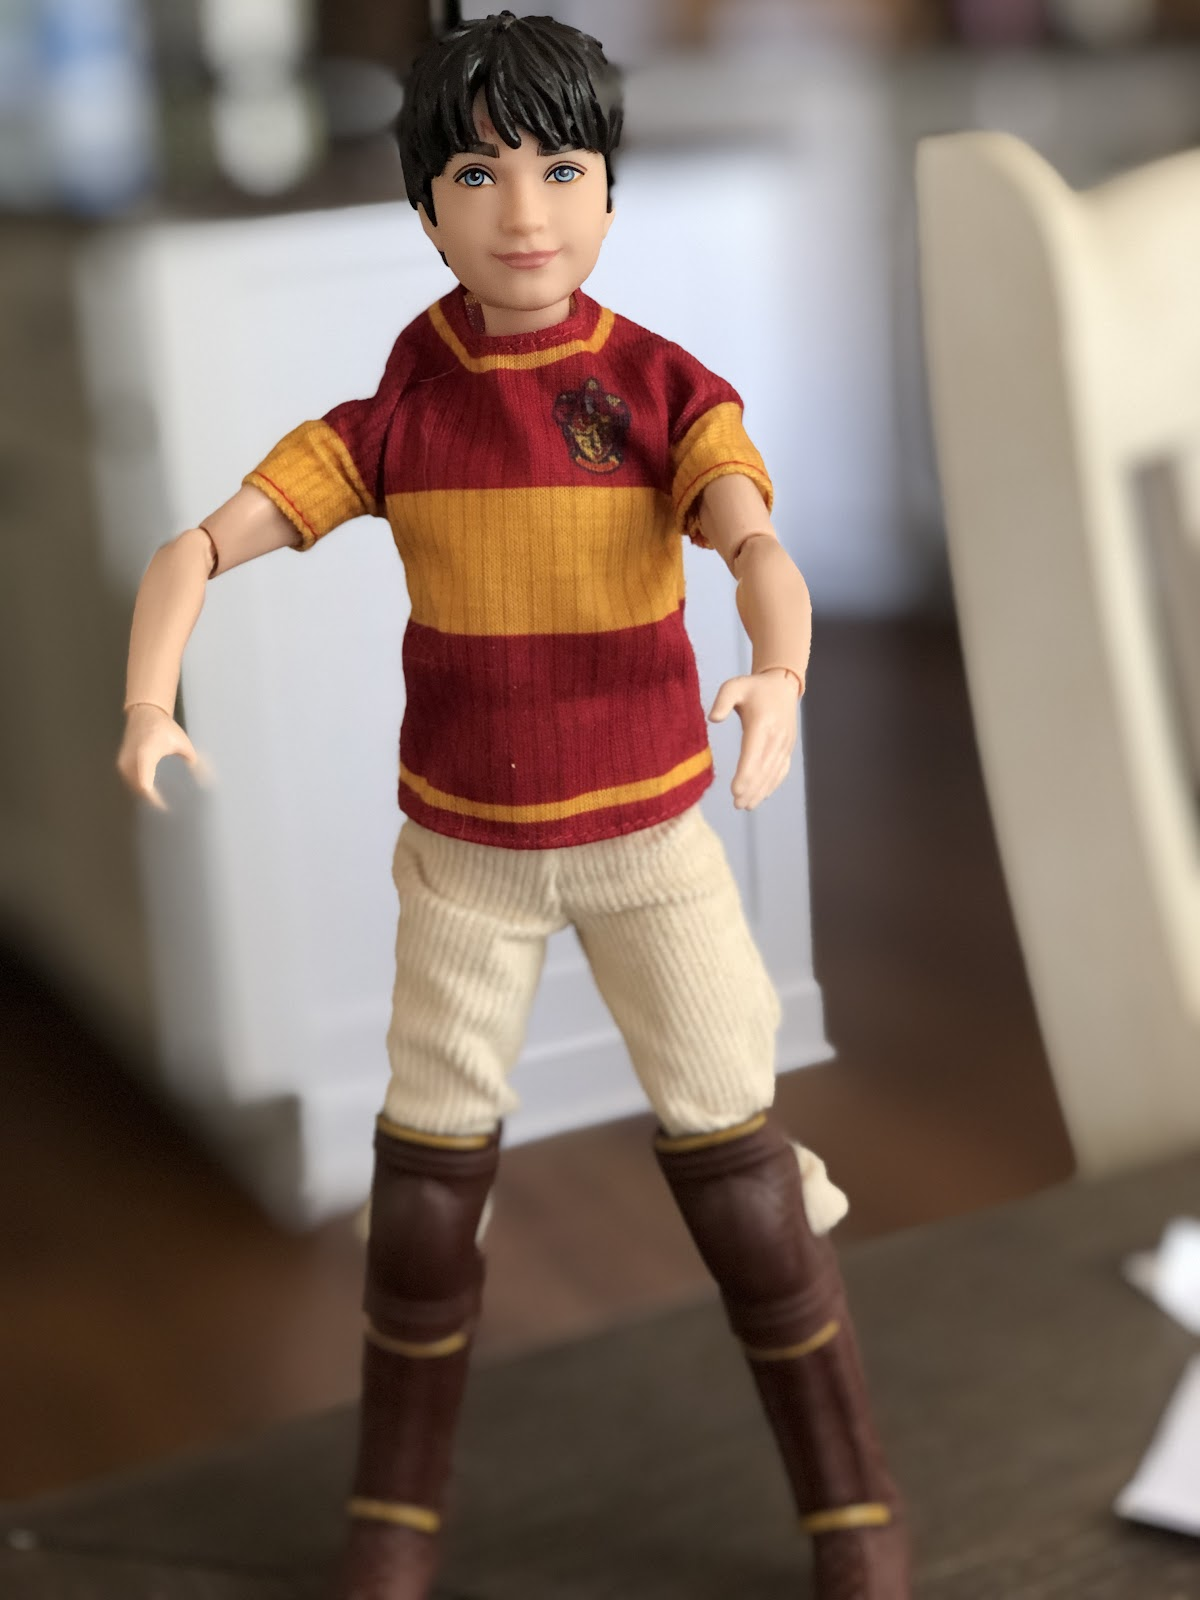 A Harry Potter action figure standing on a table.